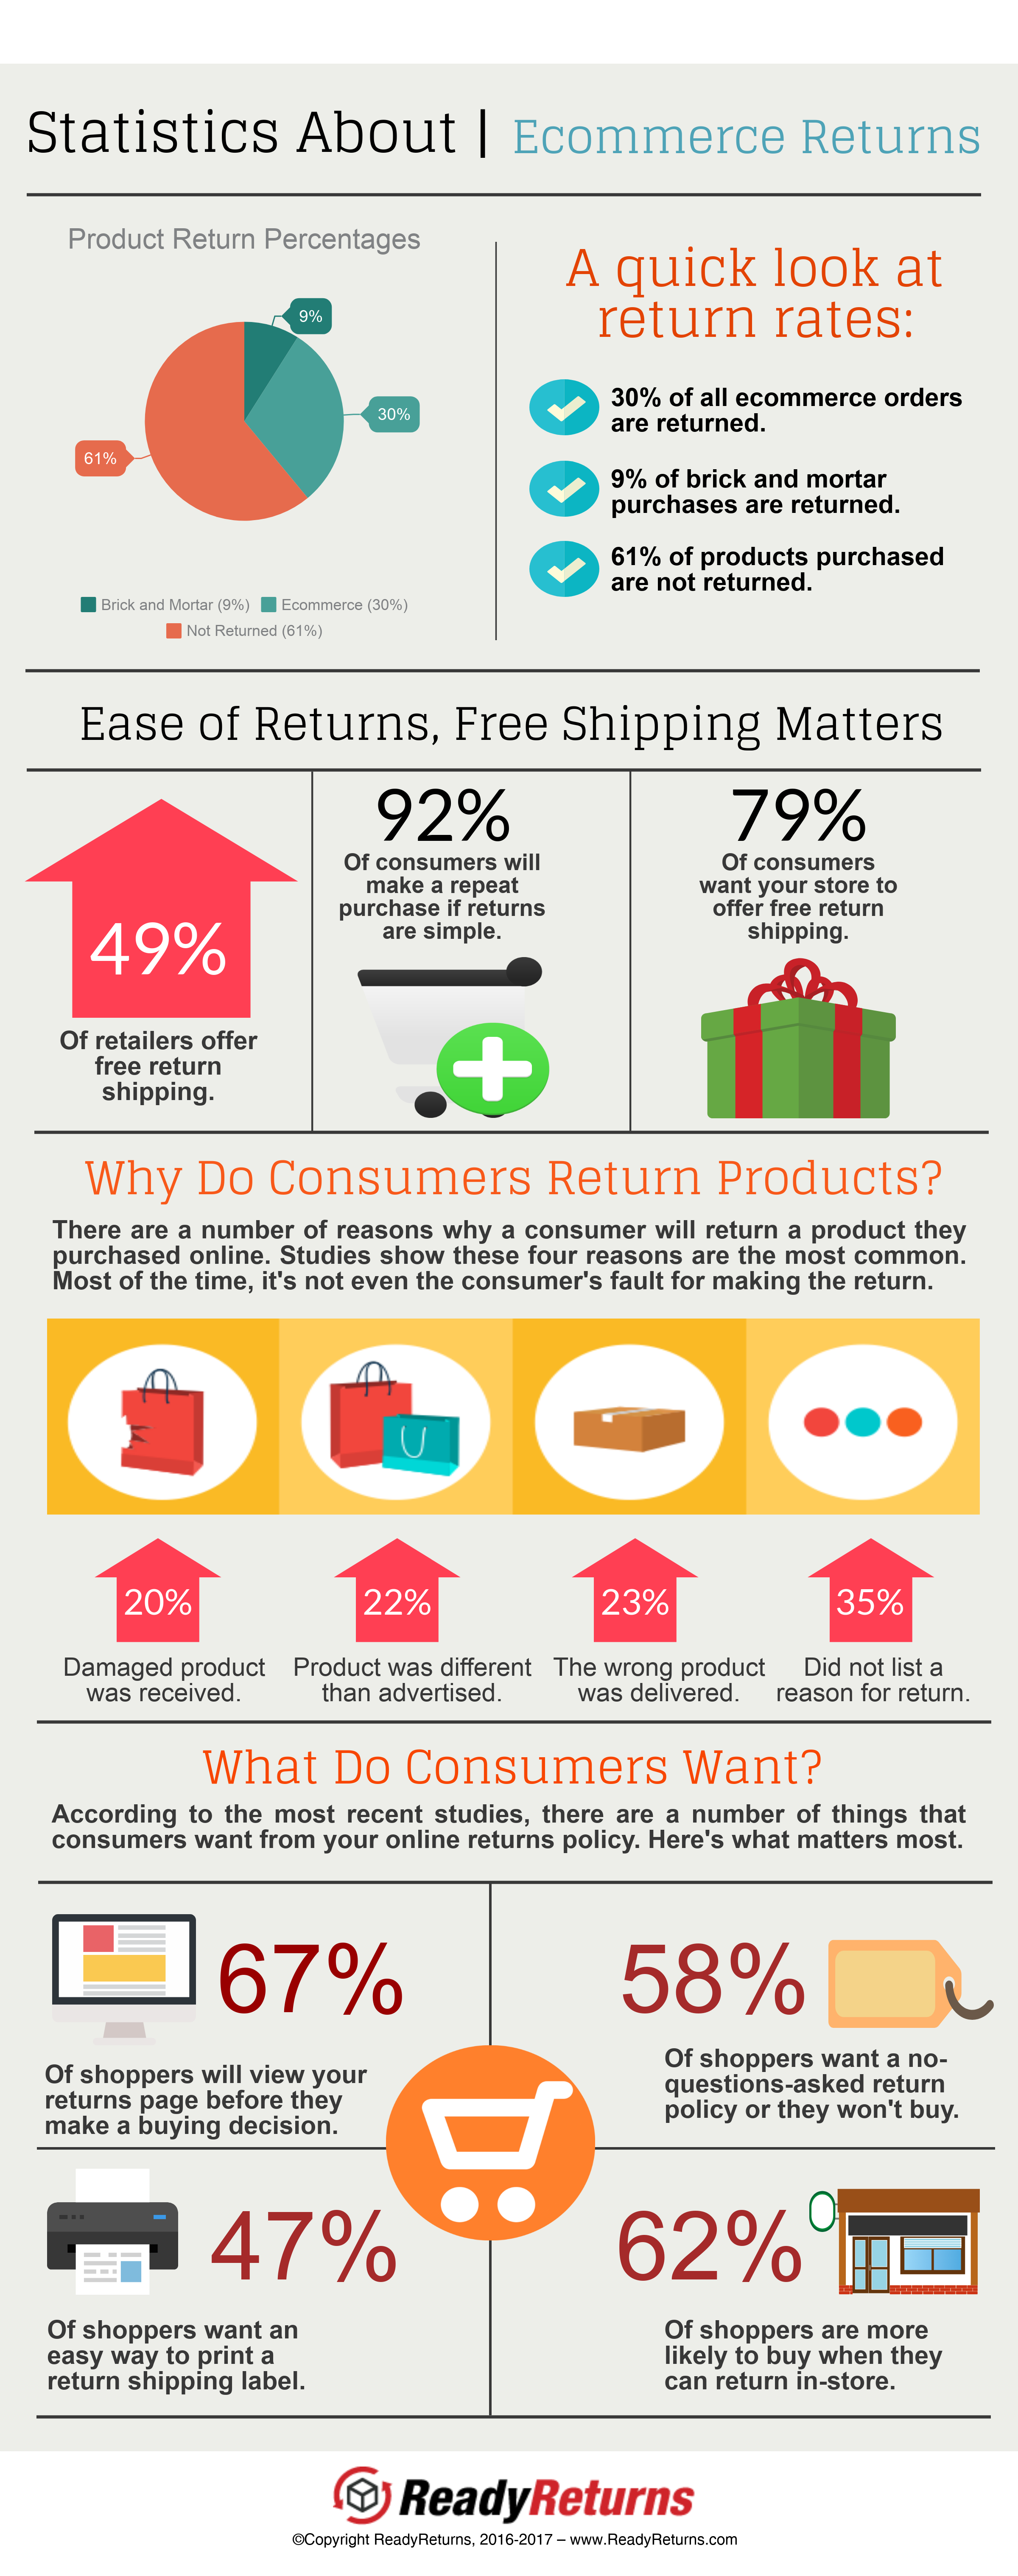 Ecommerce Returns Infographic - ReadyReturns.com.png